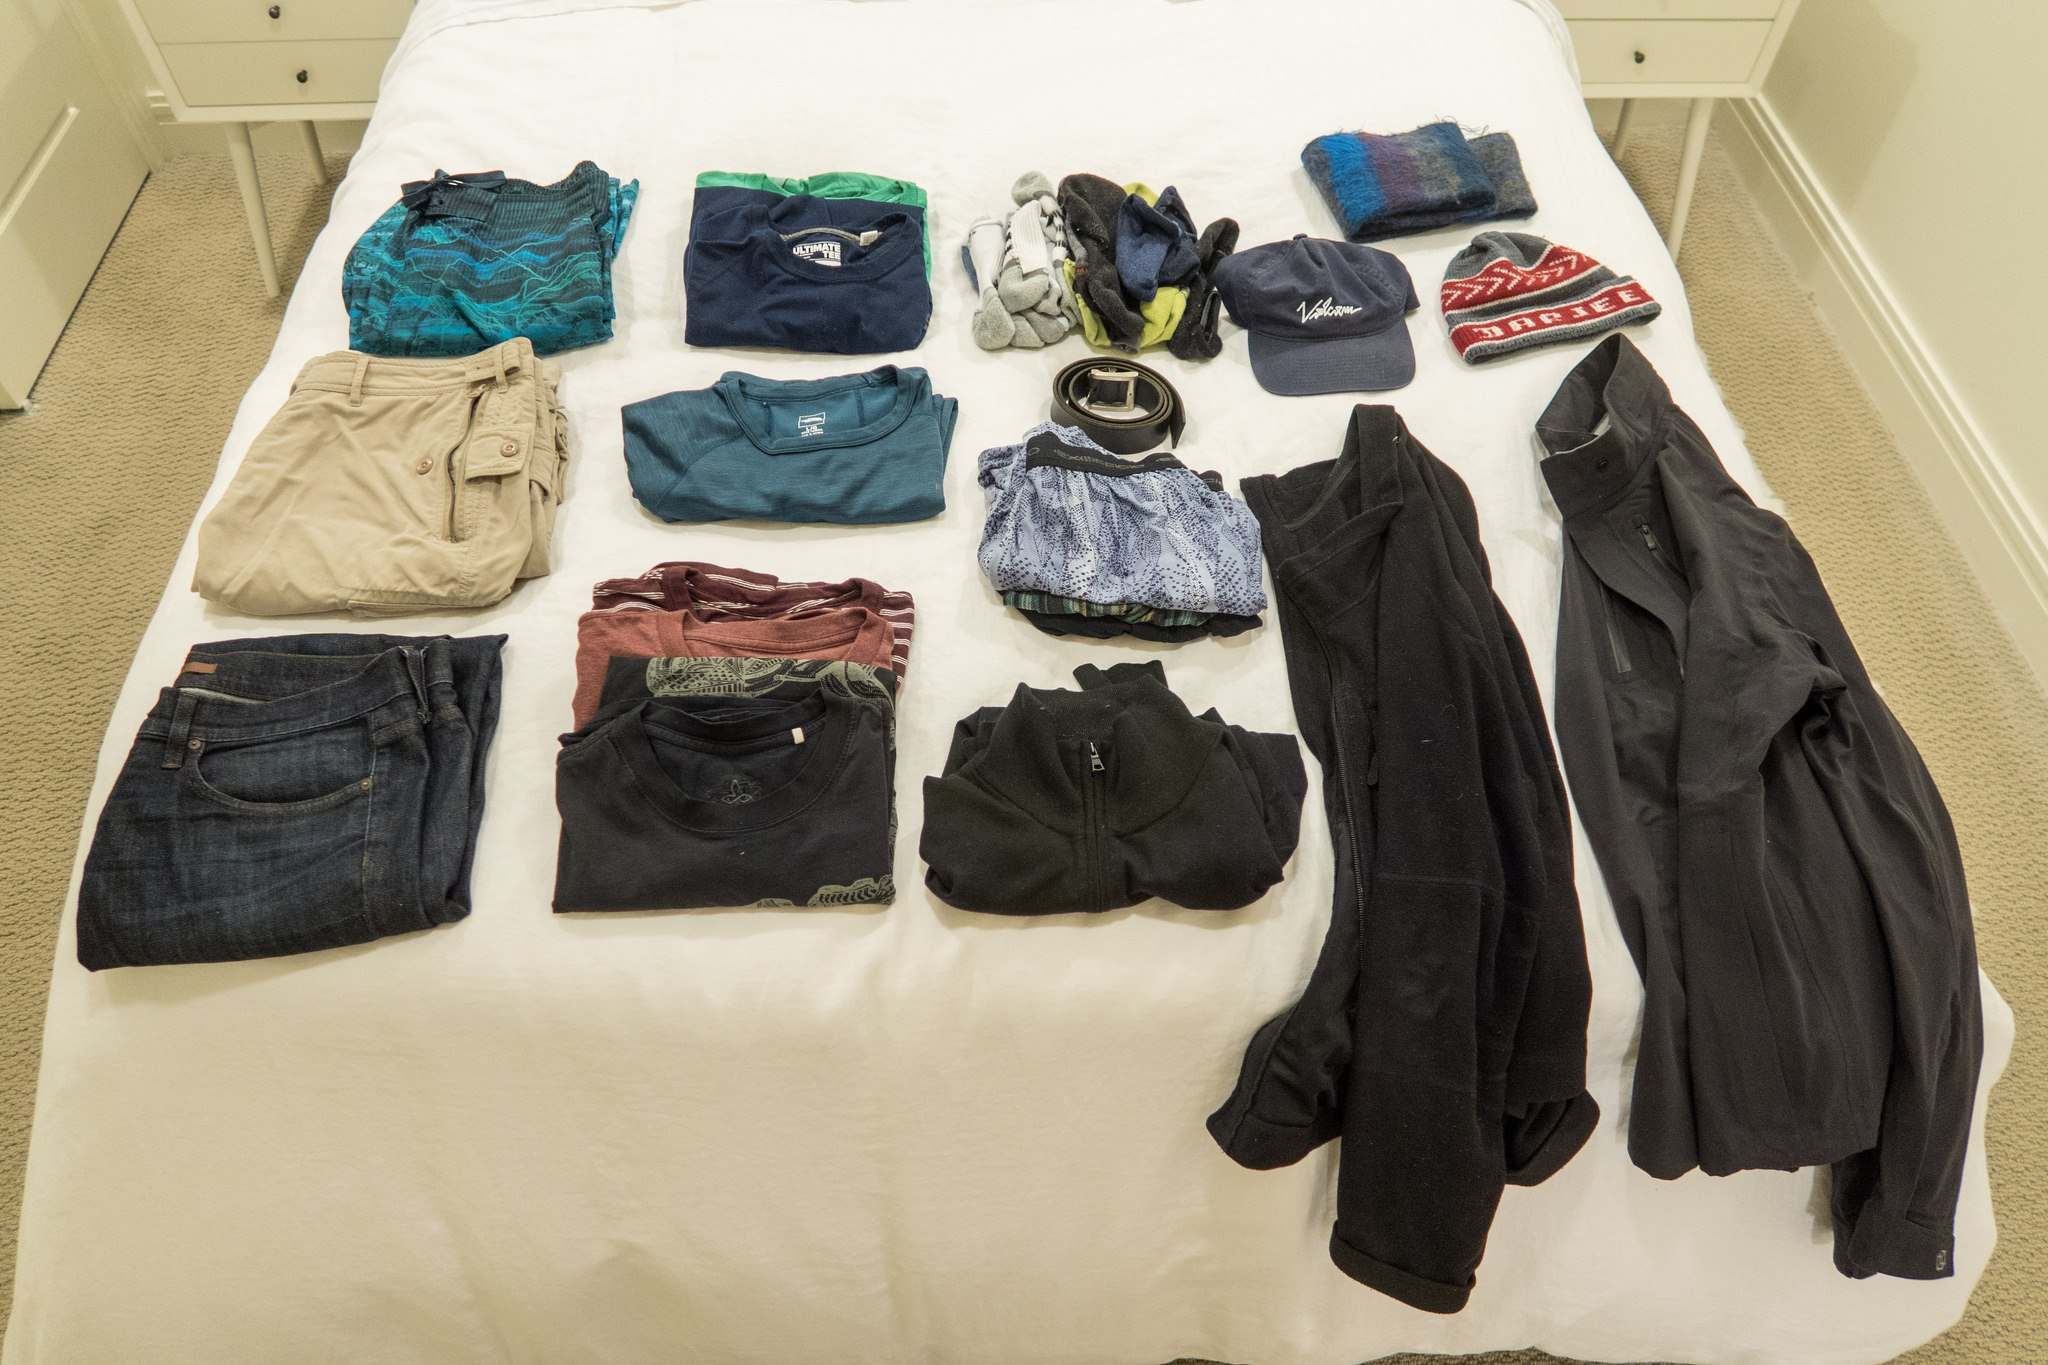 Packing list for a Fall trip to Colorado